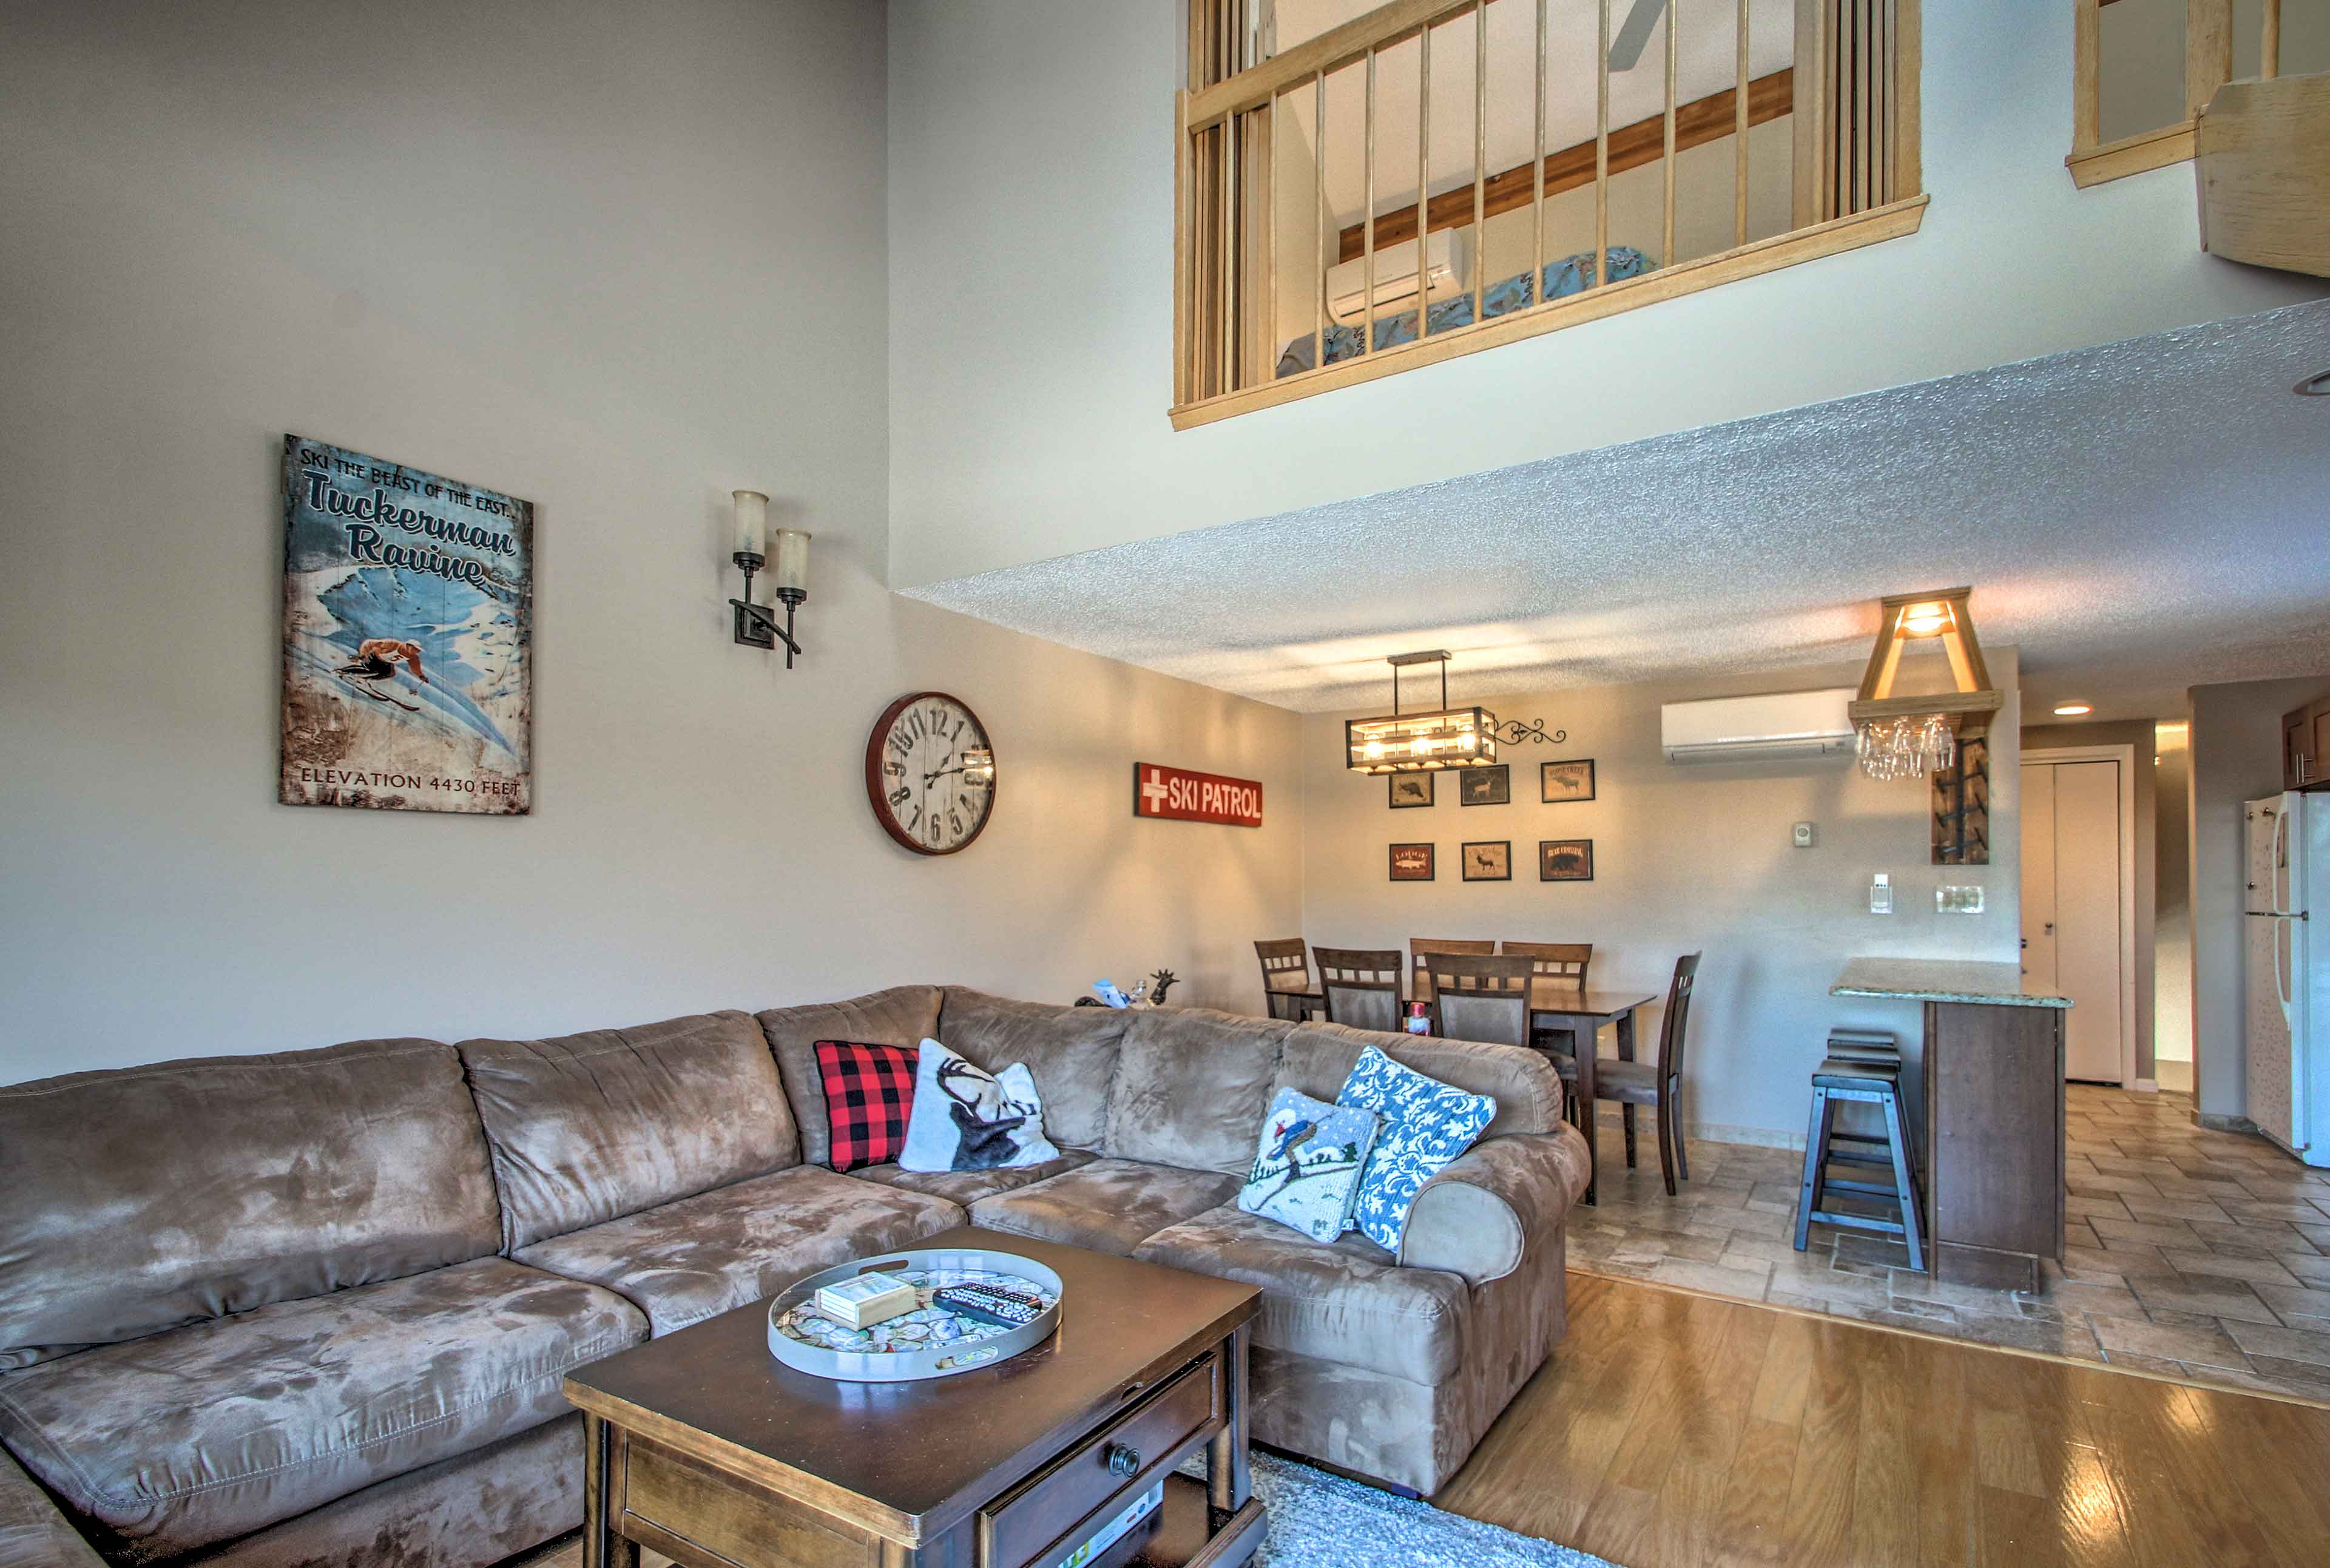 Vaulted ceilings and rustic mountain decor create a cozy space.